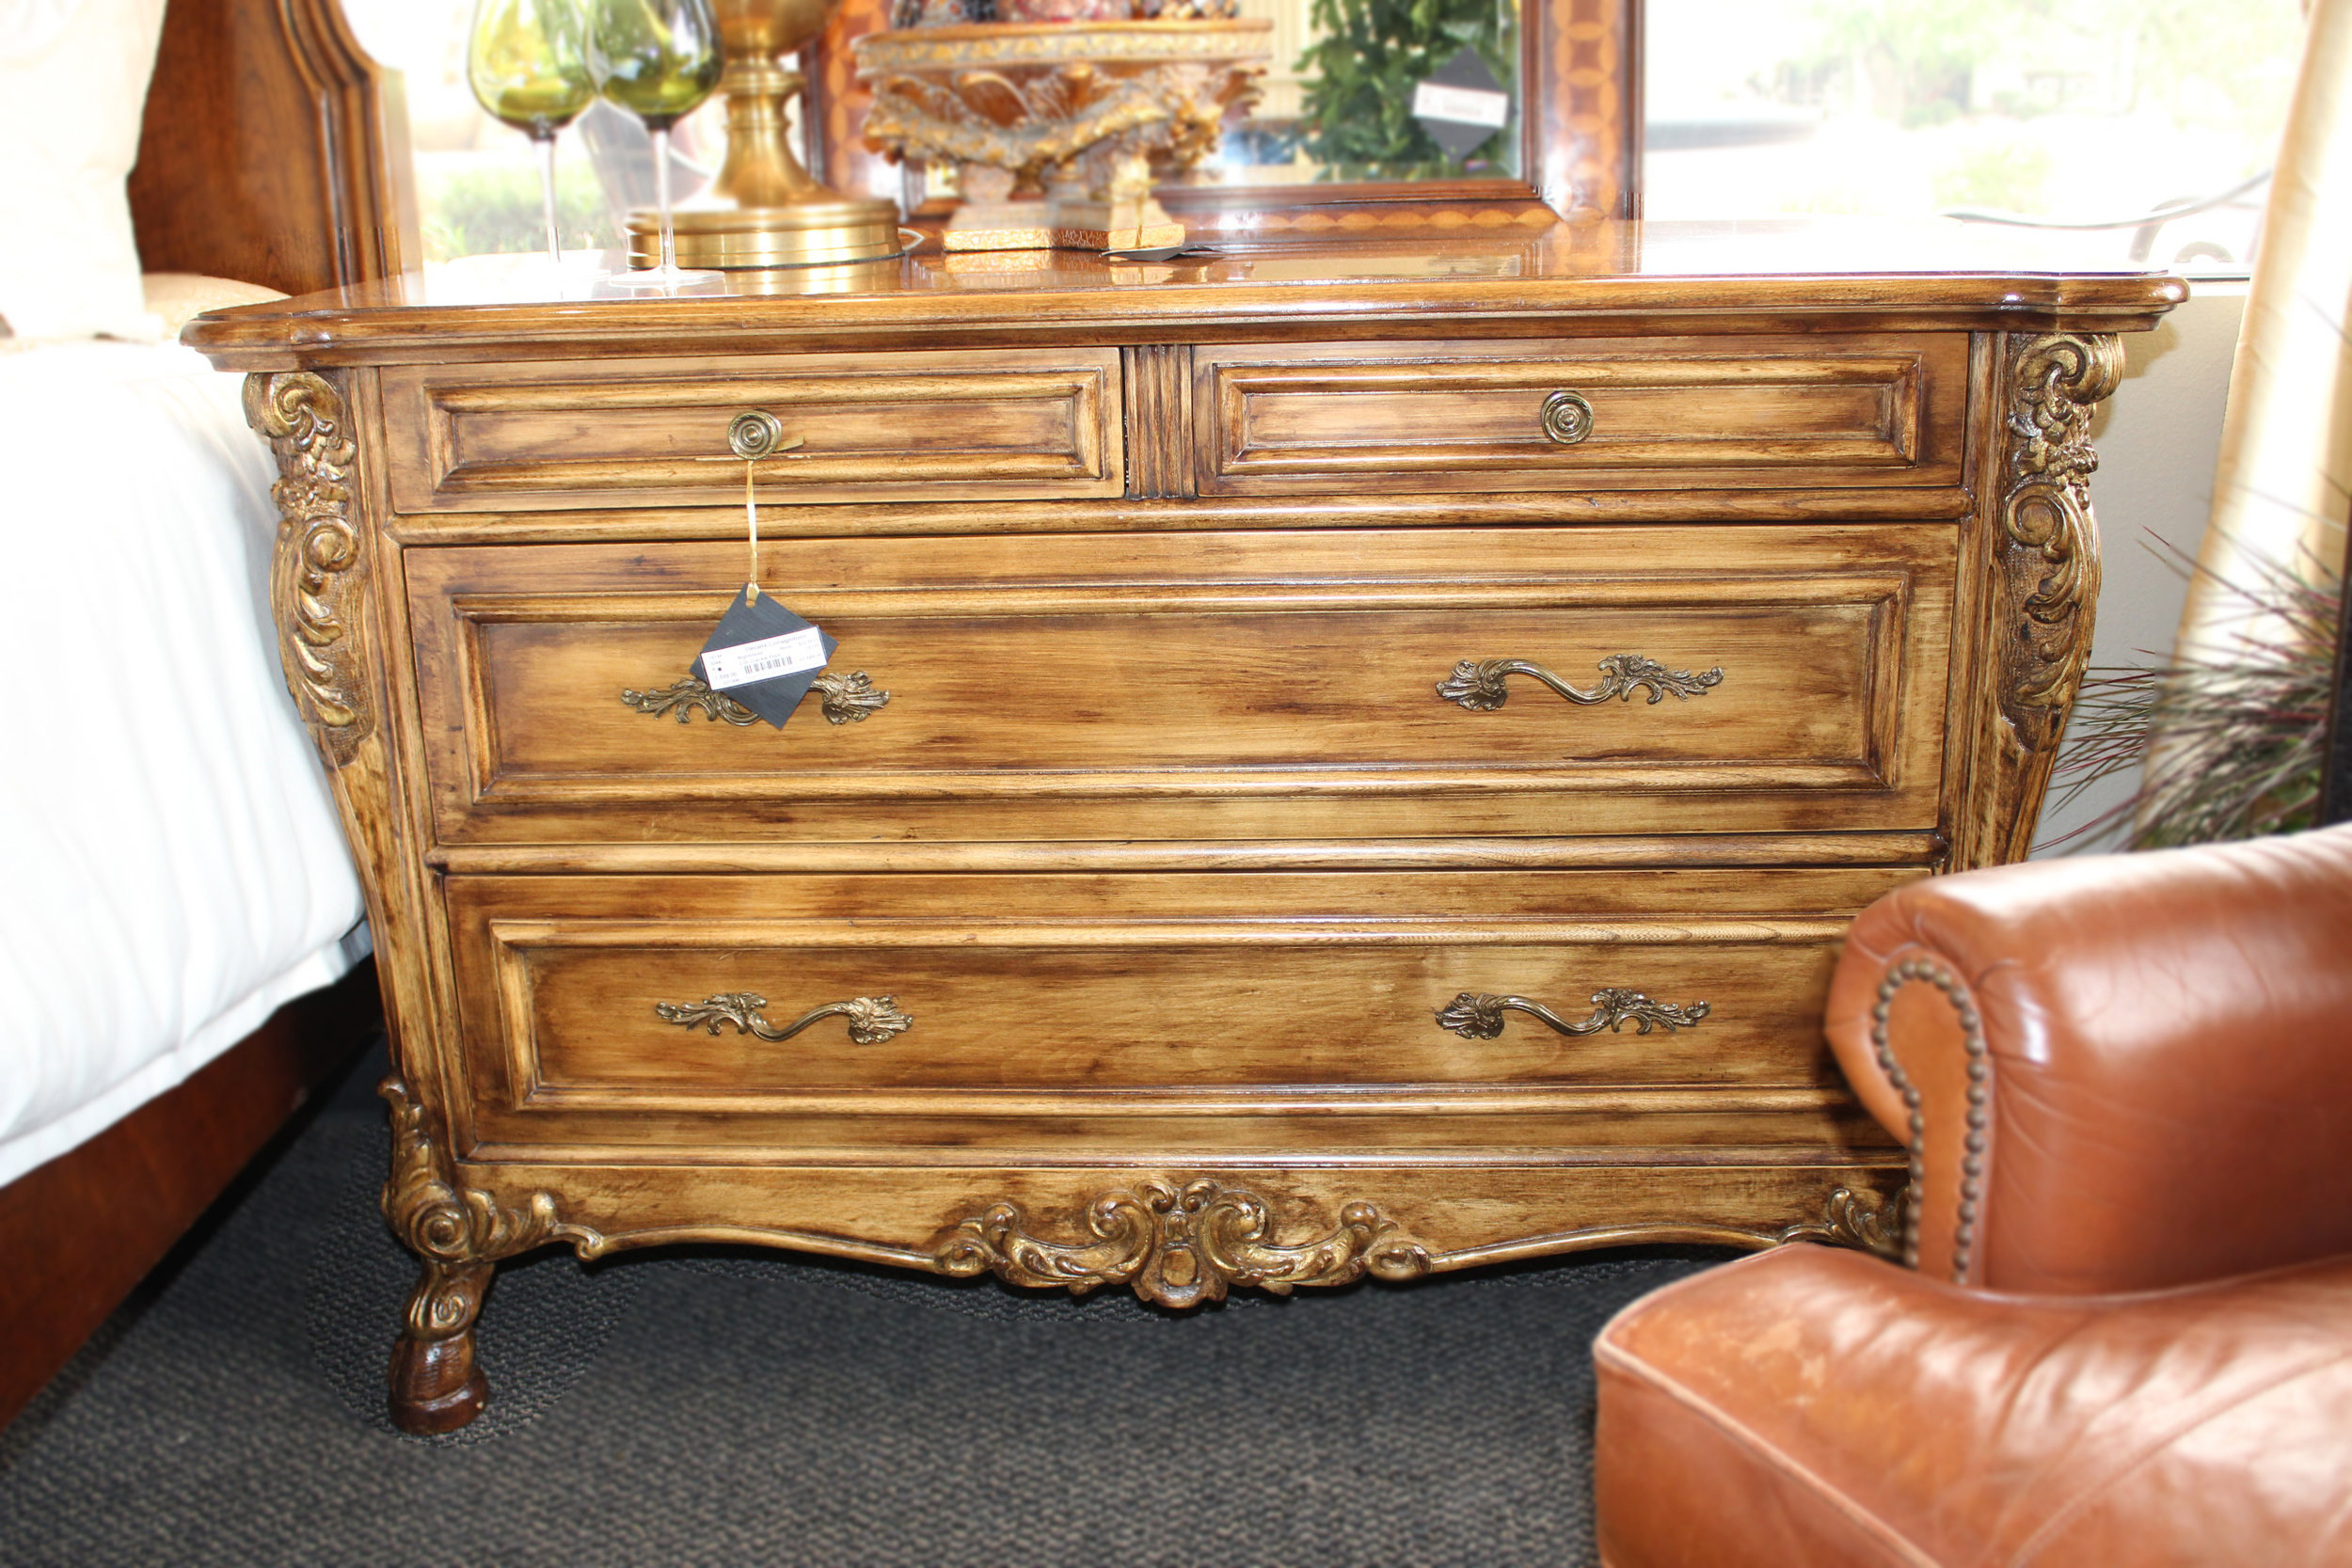 2 Drawer Crackle Finish Nightstand